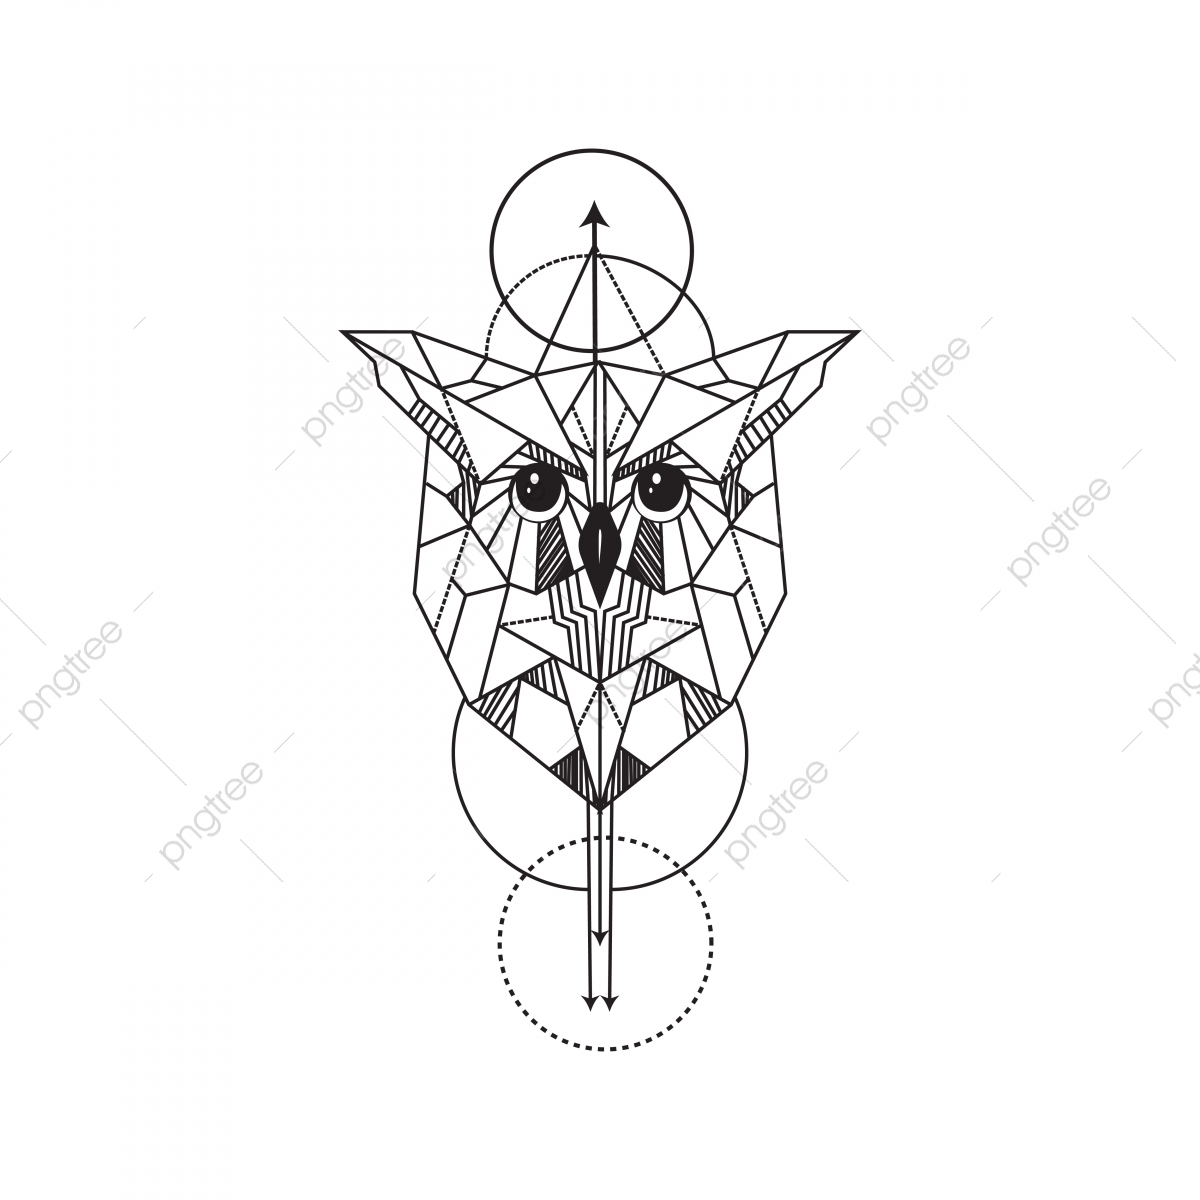 Tattoo Design Png Images Vector And Psd Files Free Download On Pngtree